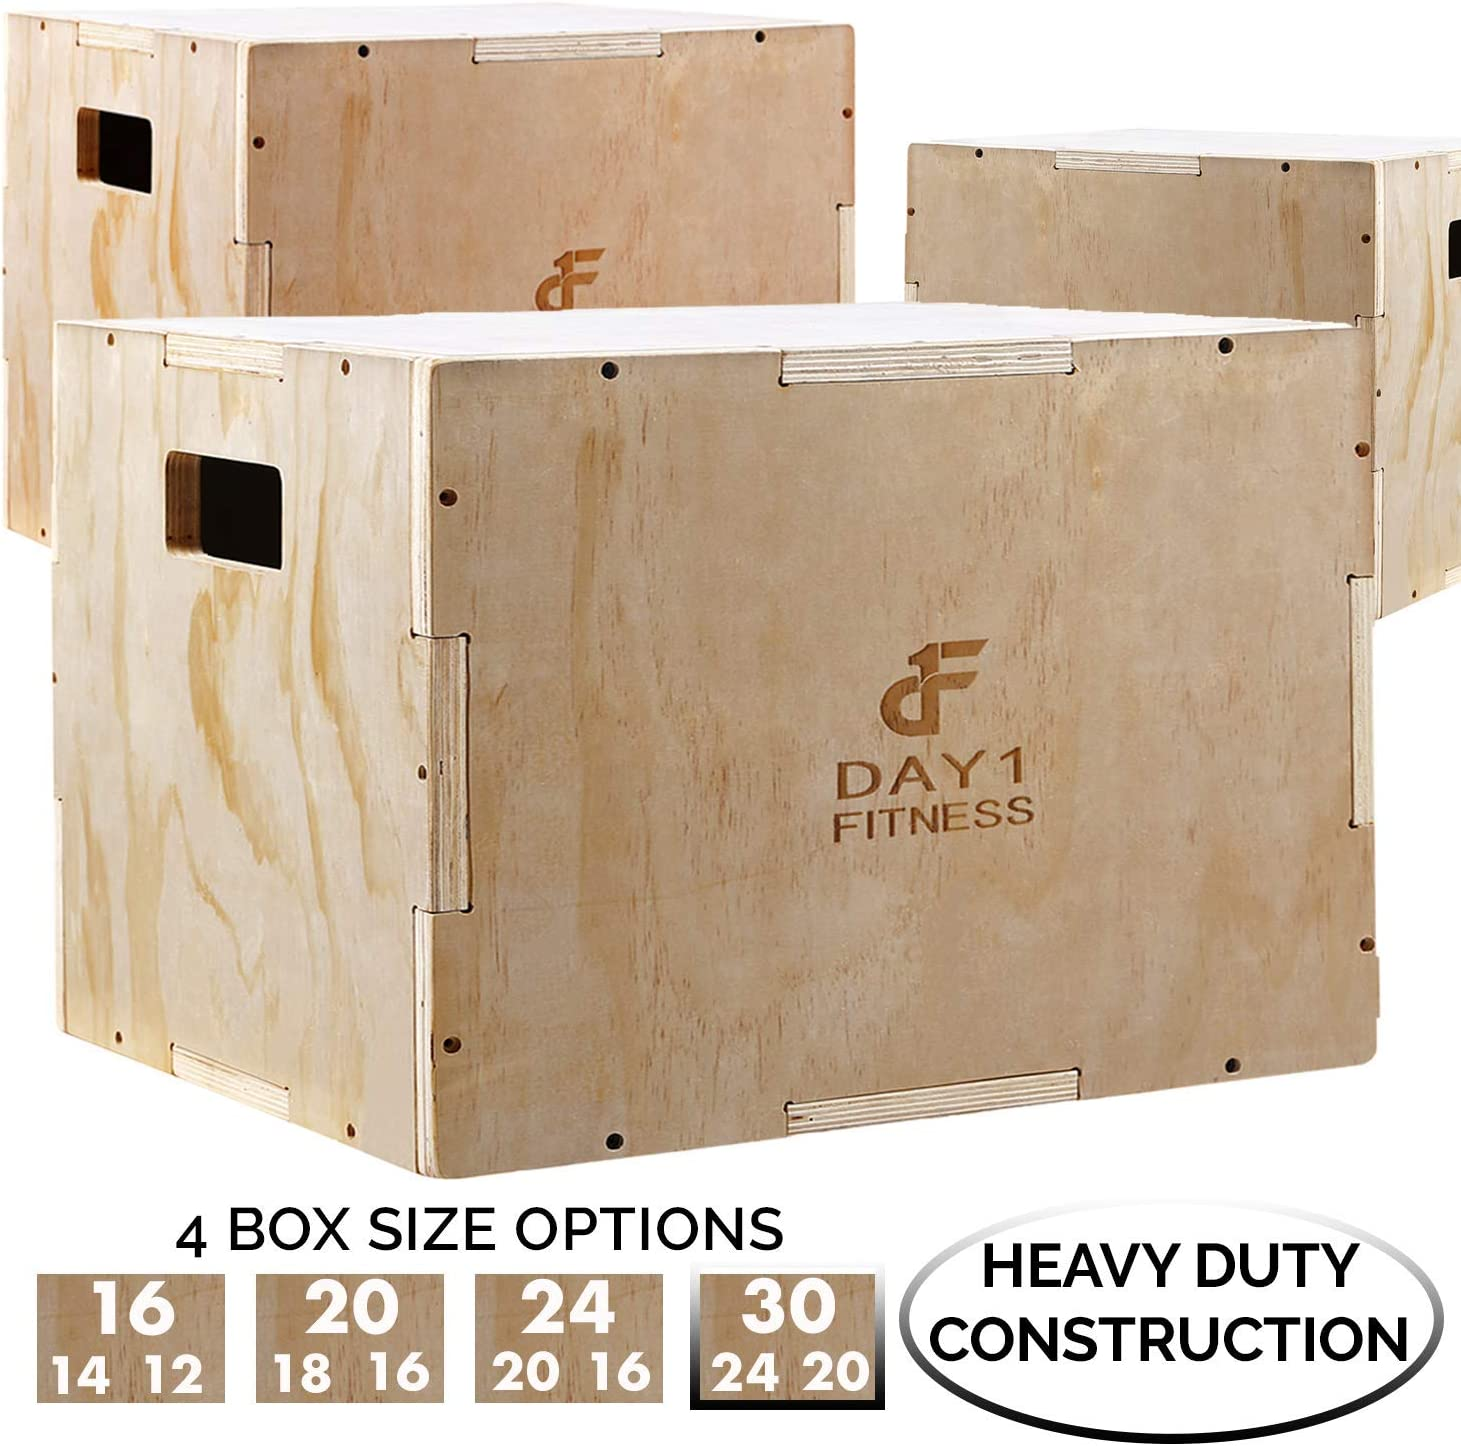 Wood Plyometric Box by Day 1 Fitness – 4 SIZE OPTIONS 16x14x12, 20x18x16, 24x20x16, OR 30x24x20 – 3-in-1, for Crossfit Training, Jumps – Heavy-Duty, Non-Slip Plyo Boxes, Rounded Corners for Safety